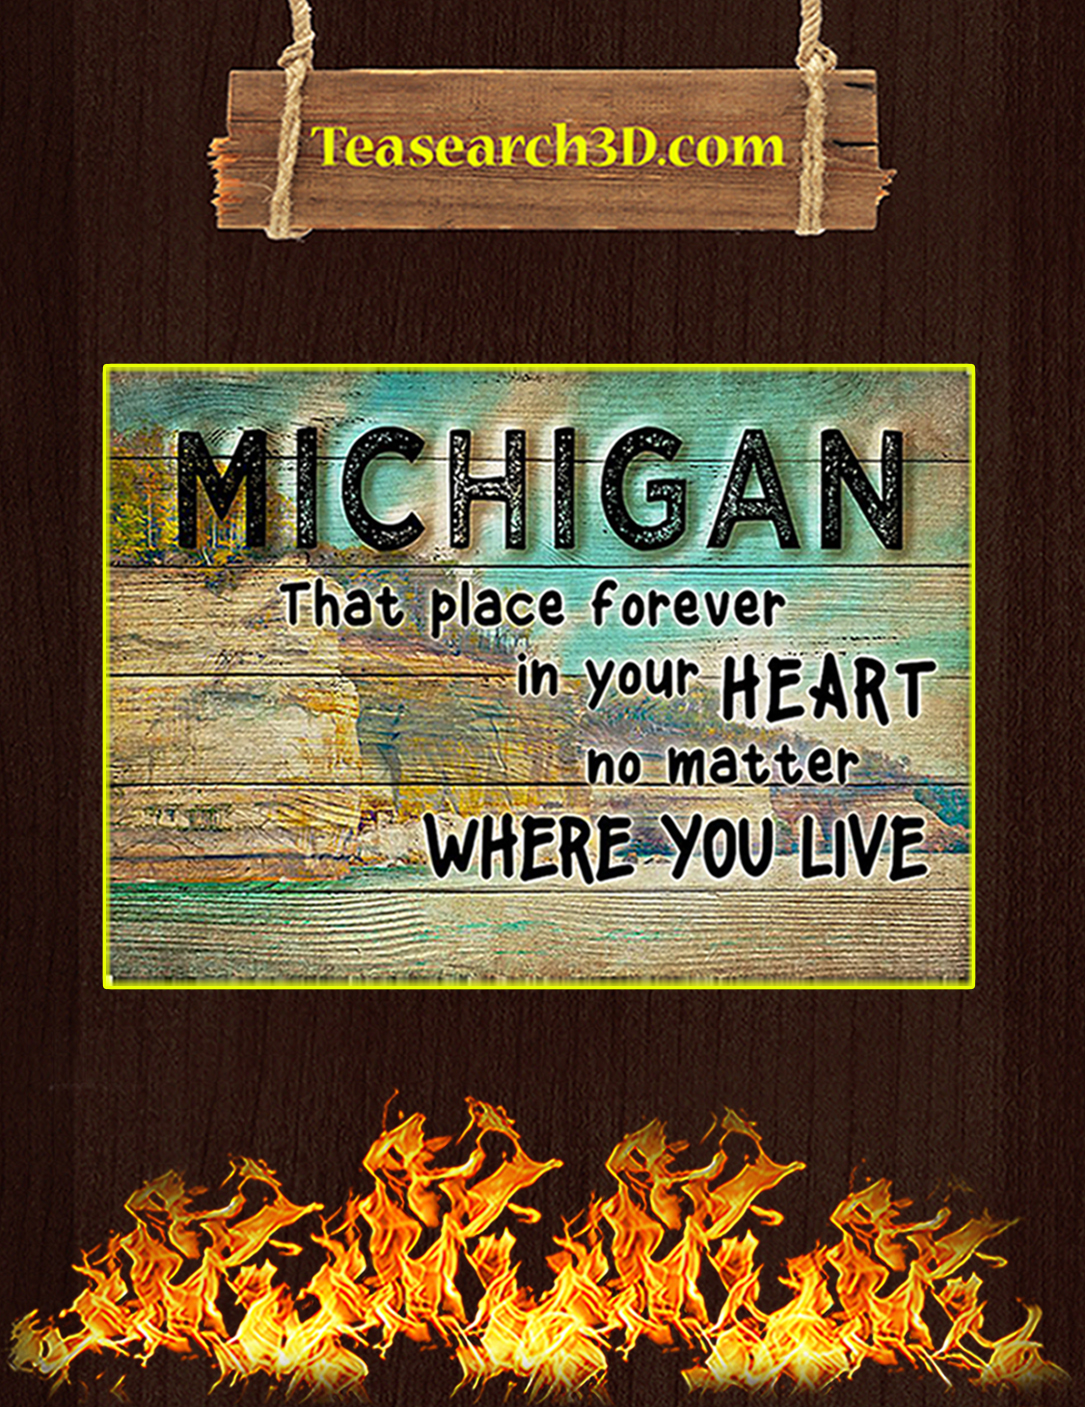 Michigan that place forever in your heart poster A2